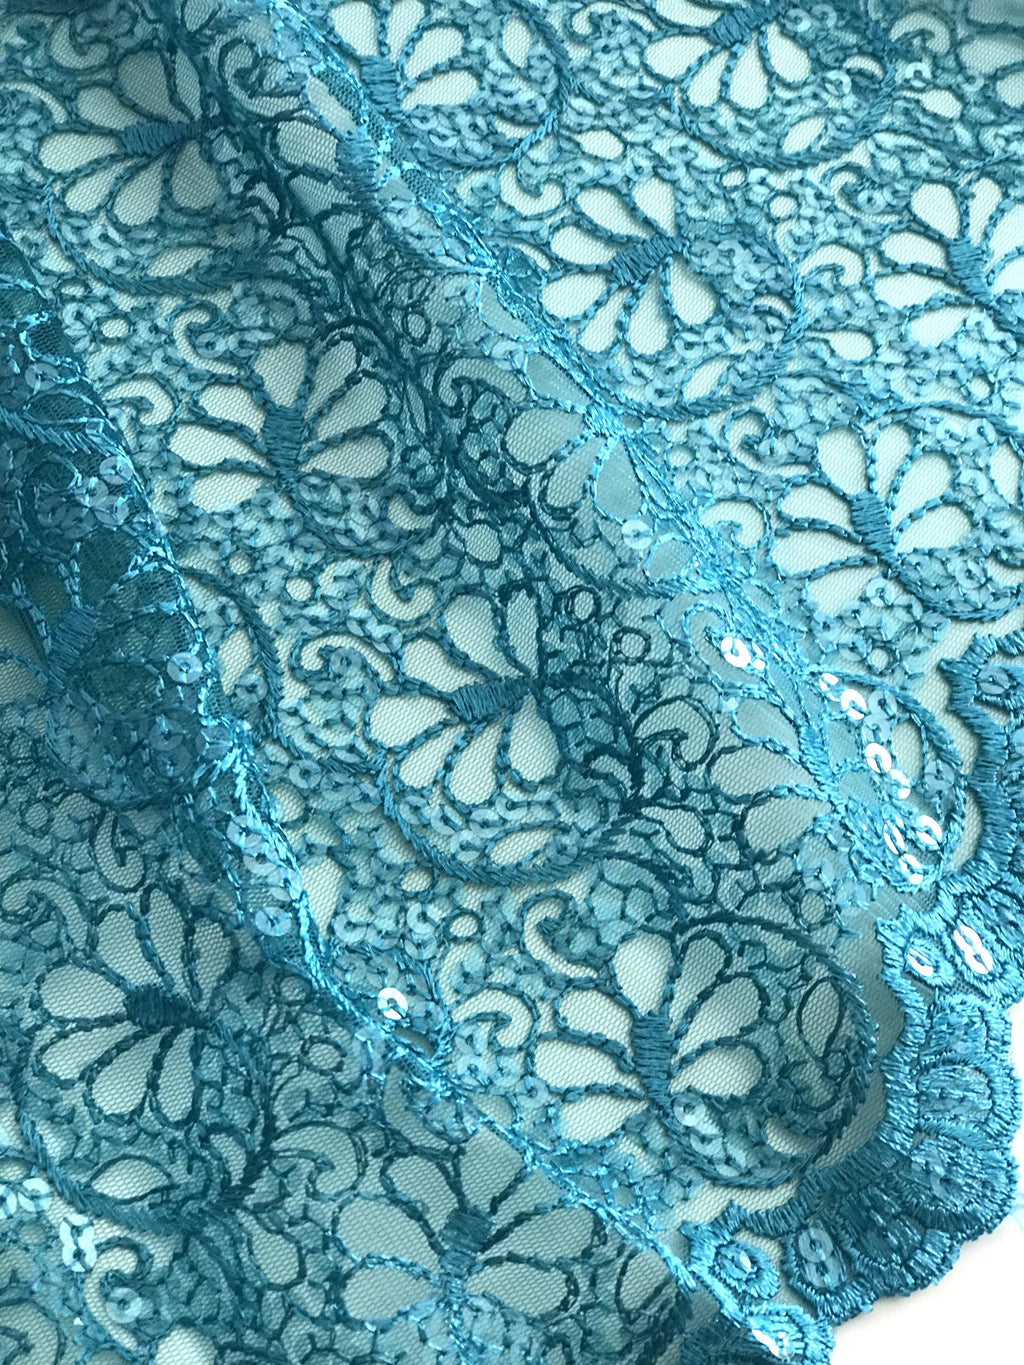 Teal Embroidered Net Fabric Embellished with Sequins